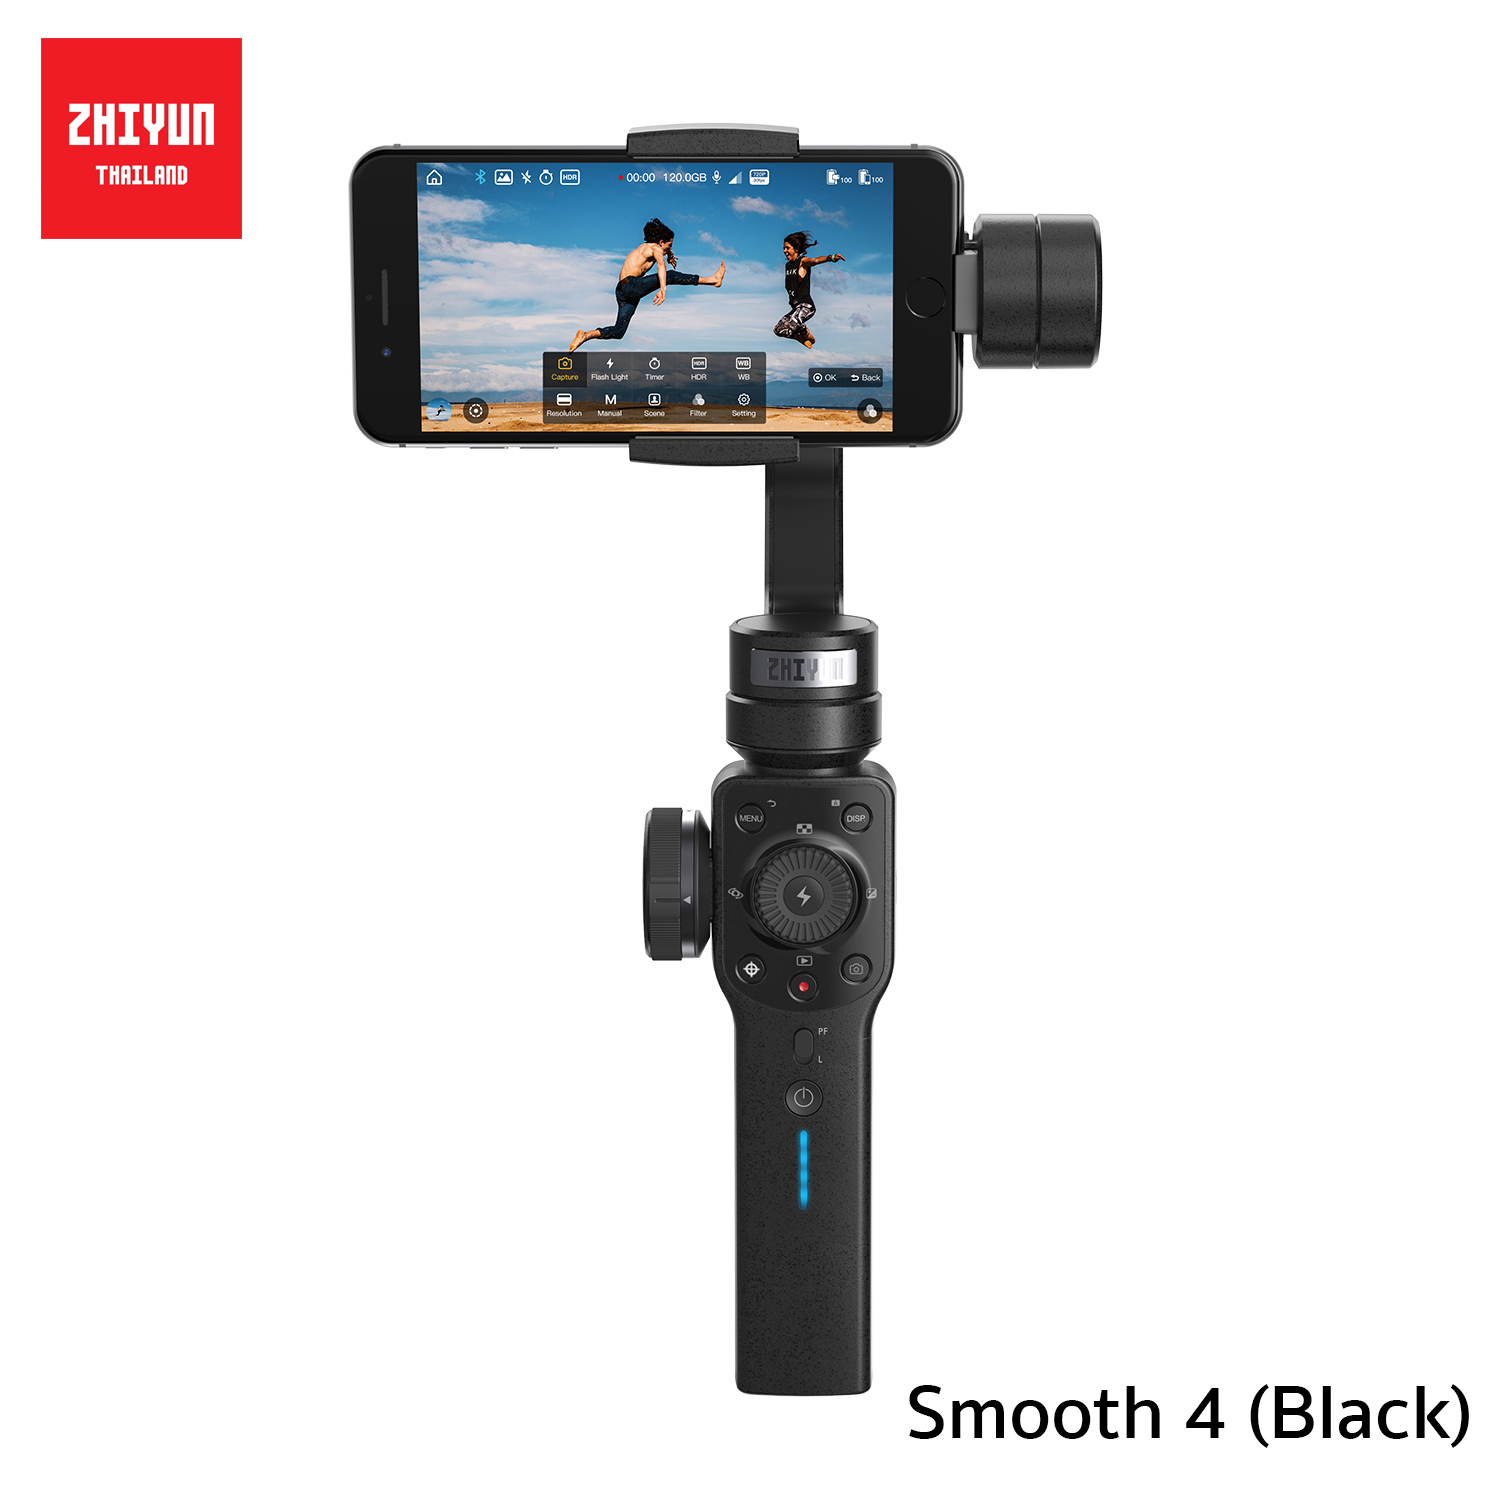 Zhiyun Smooth4 Smartphone Gimbal (Black)